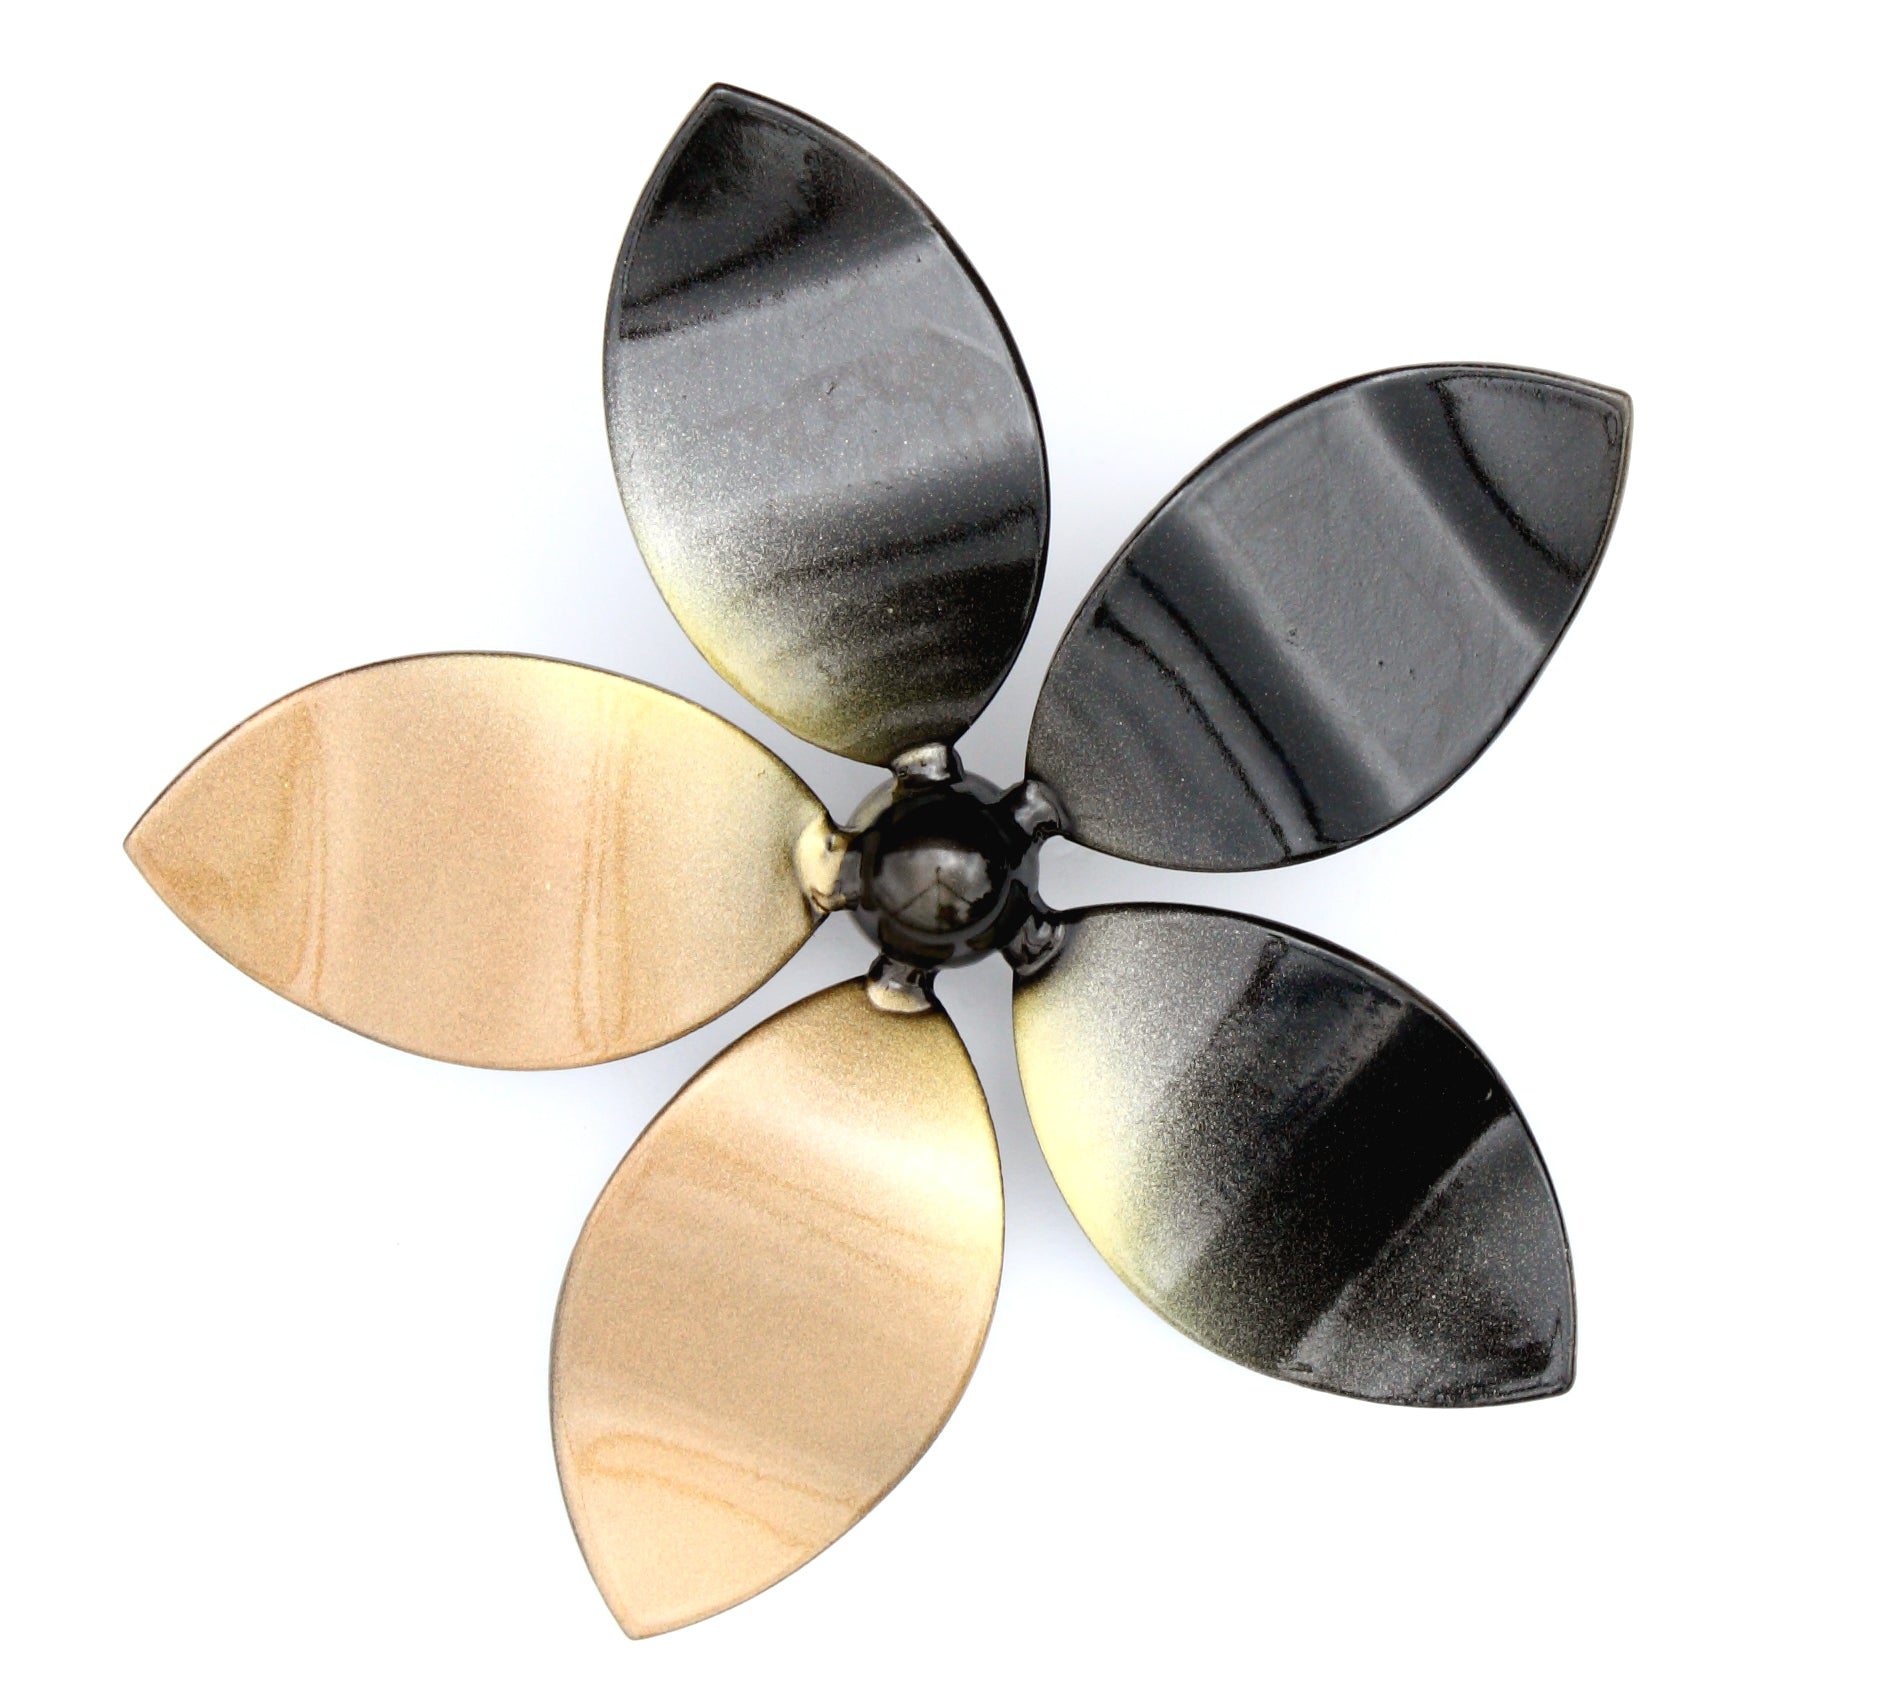 Wall Mounted Metal Art Flower With Solar LED Light: Set of Two